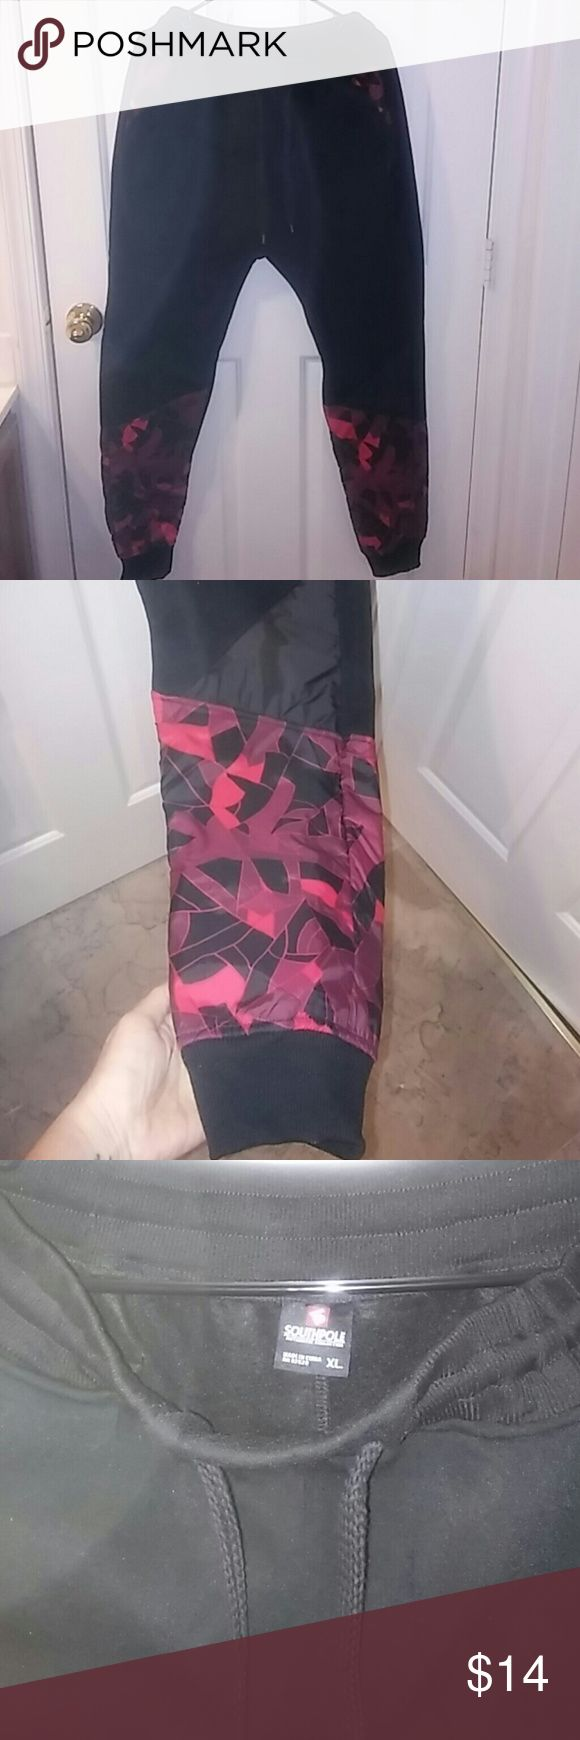 Men's black and red jogger pants Men's black jogger pants with red pattern around leg. Excellent condition...only worn a couple of times. South Pole Pants Sweatpants & Joggers